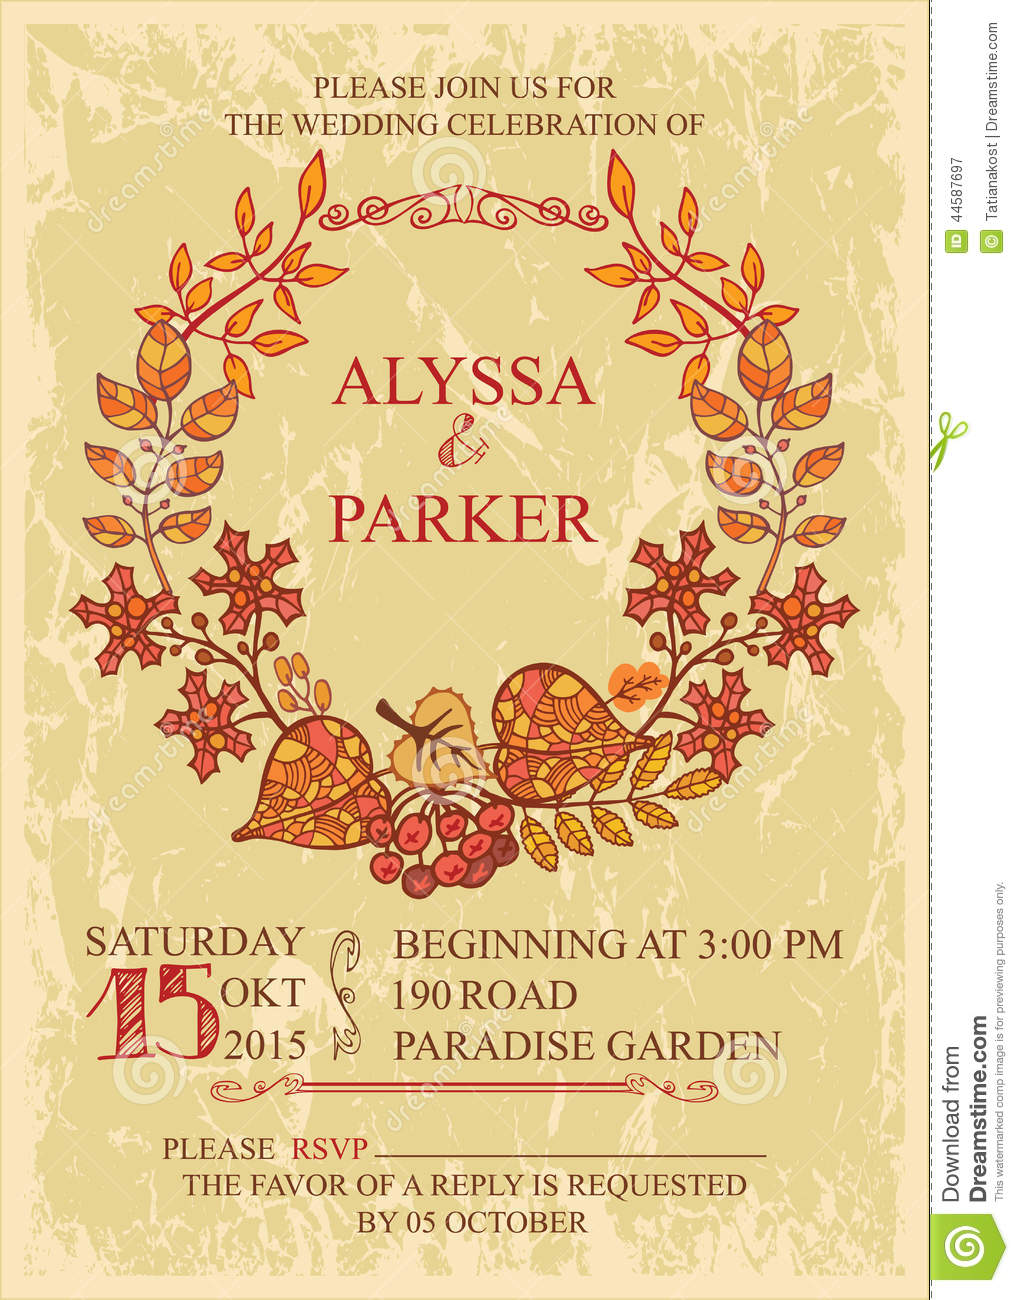 Royalty Free Vector Download Vintage Fall Wedding Invitation